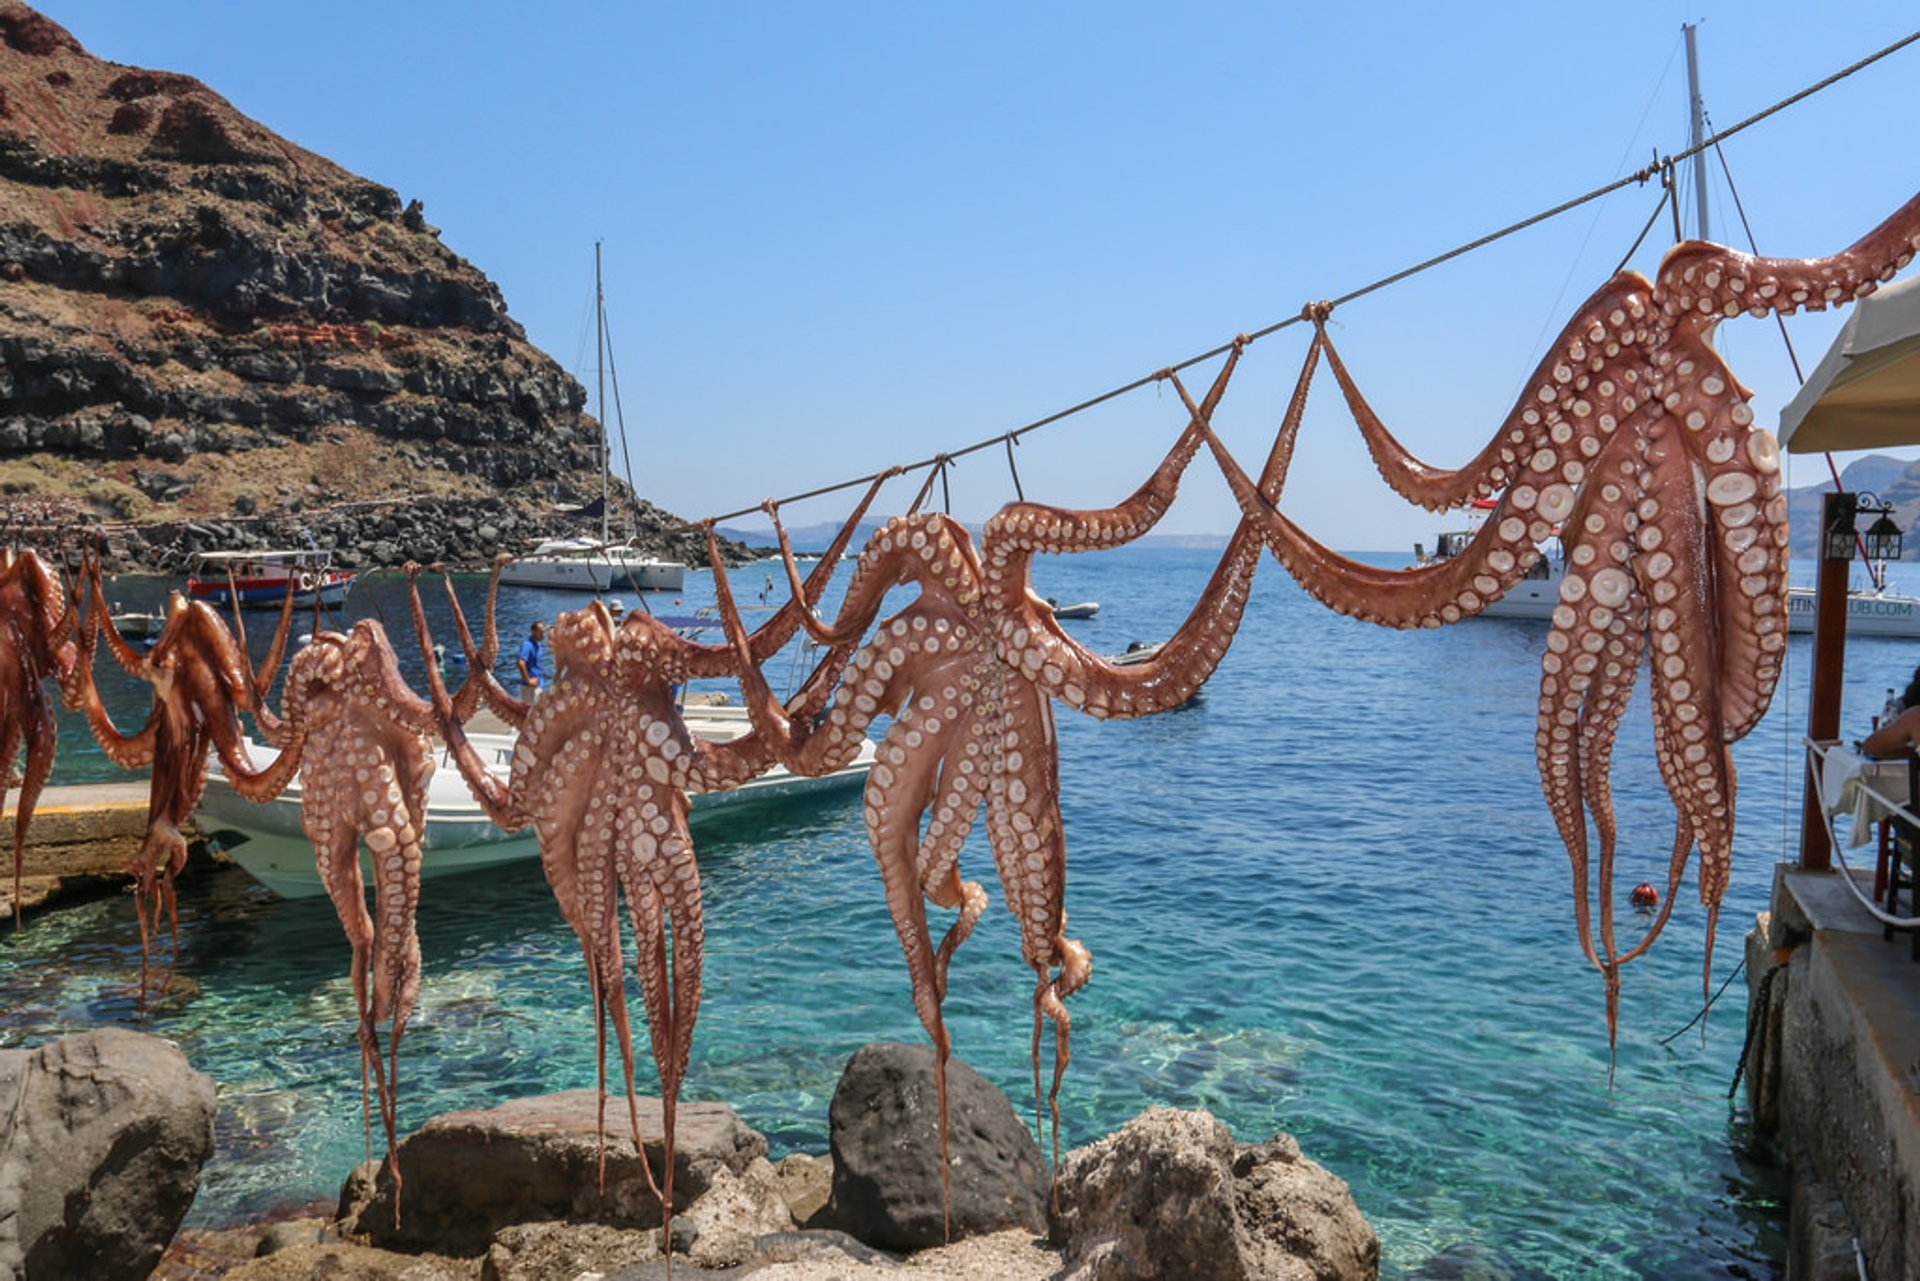 Octopus Season in Santorini 2020 - Best Time